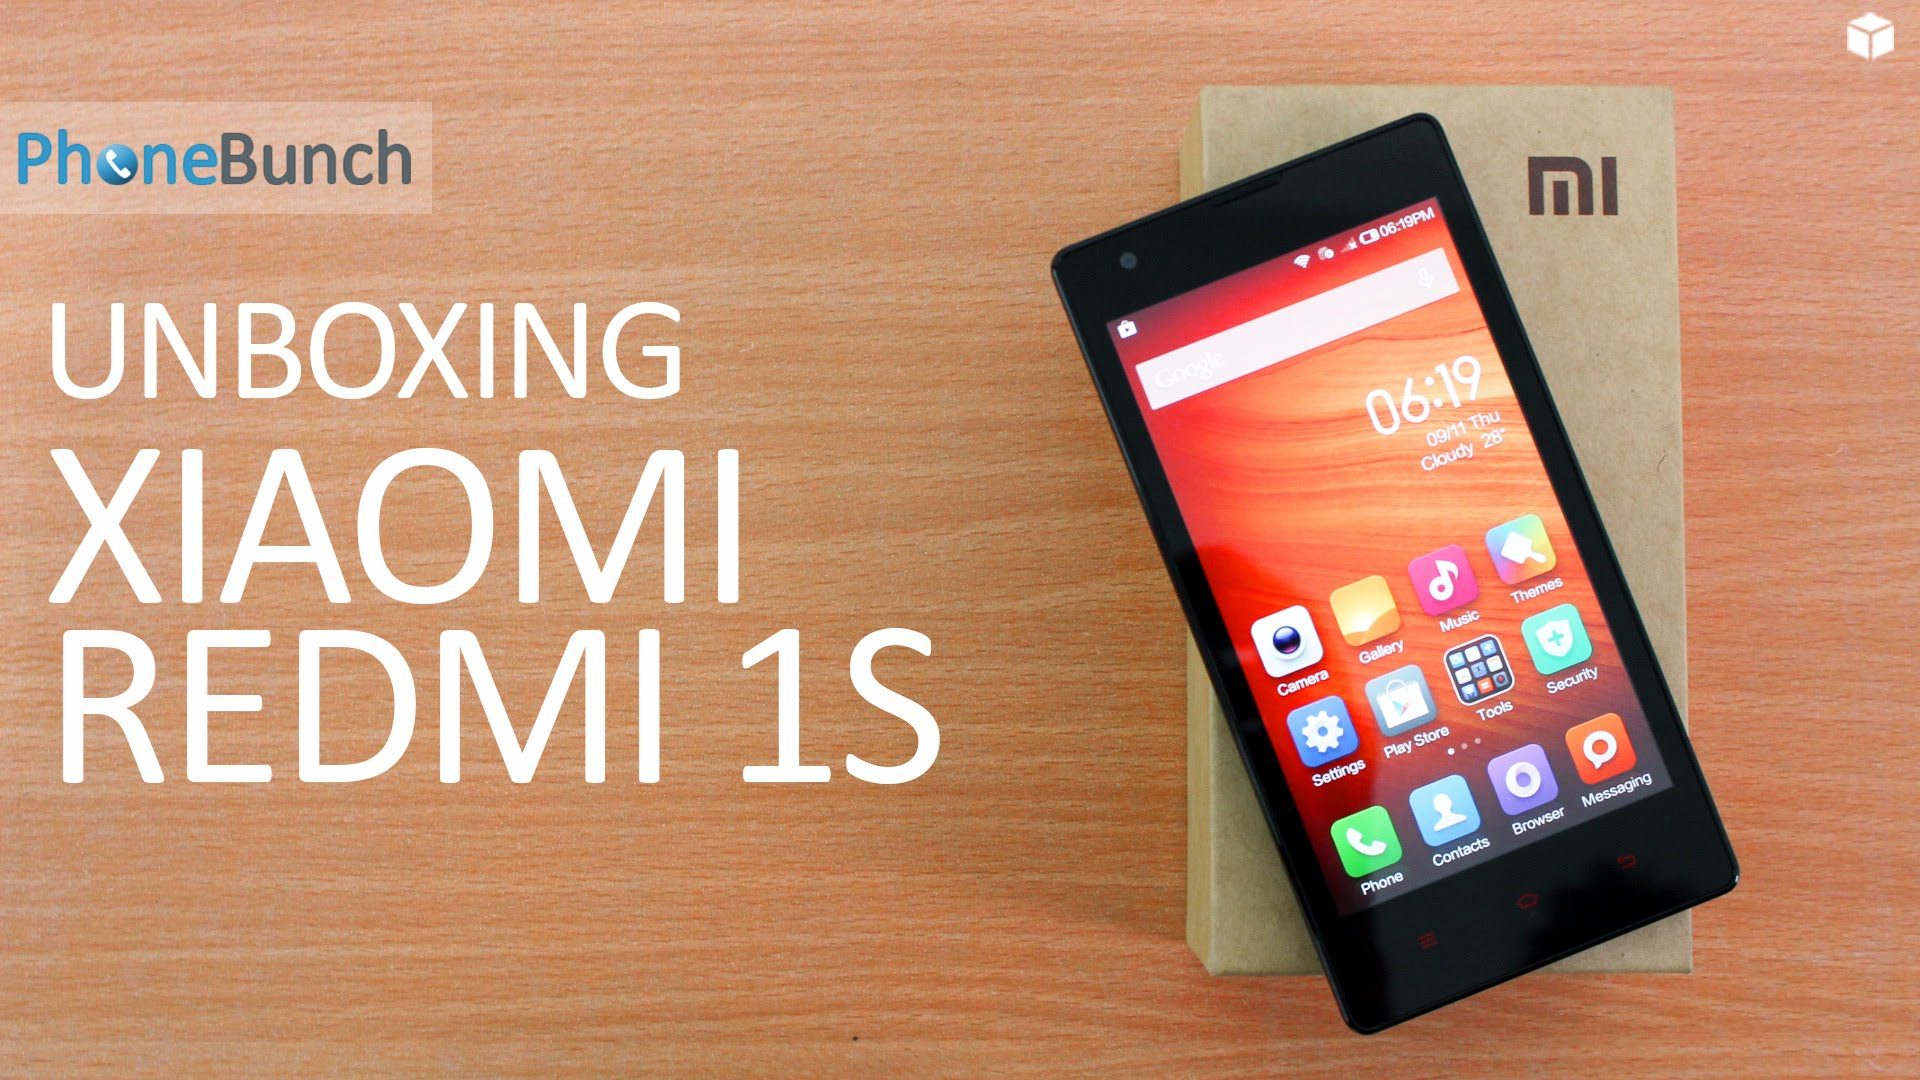 The redmi 1s comes with a 4 7 inch hd display quad core snapdragon 400 processor with 1 gb ram running android 4 3 jelly bean priced at just rs 5999